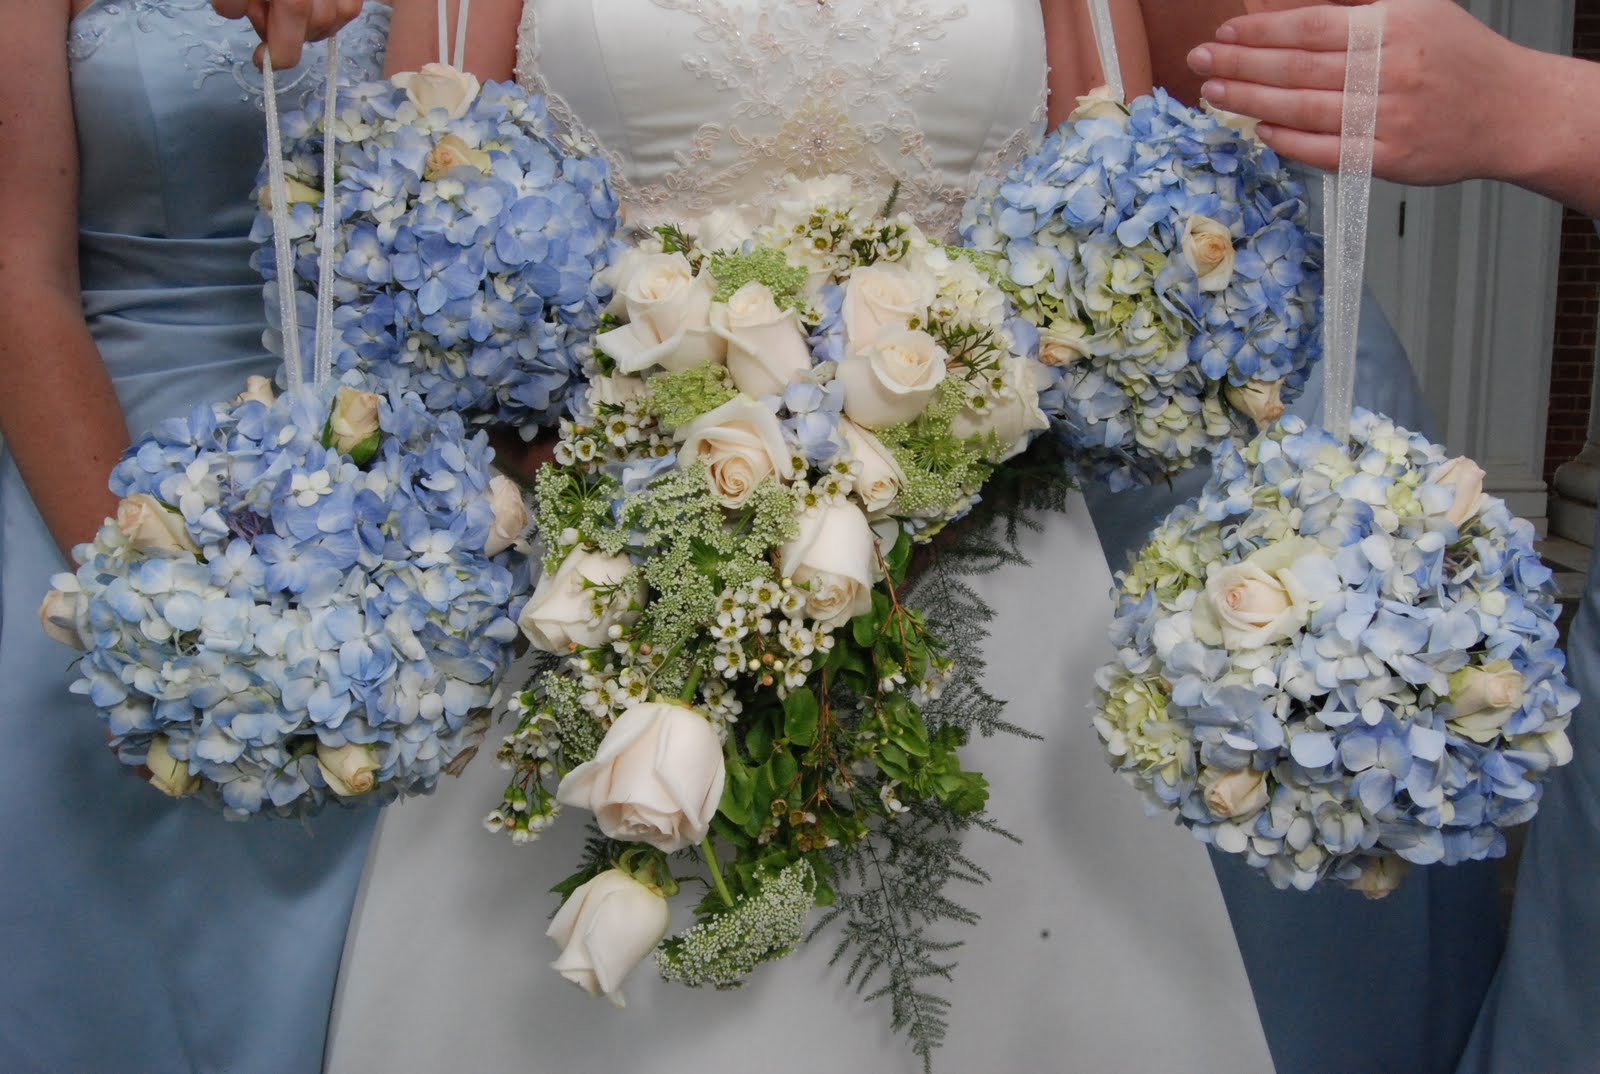 Here are all the bouquets from